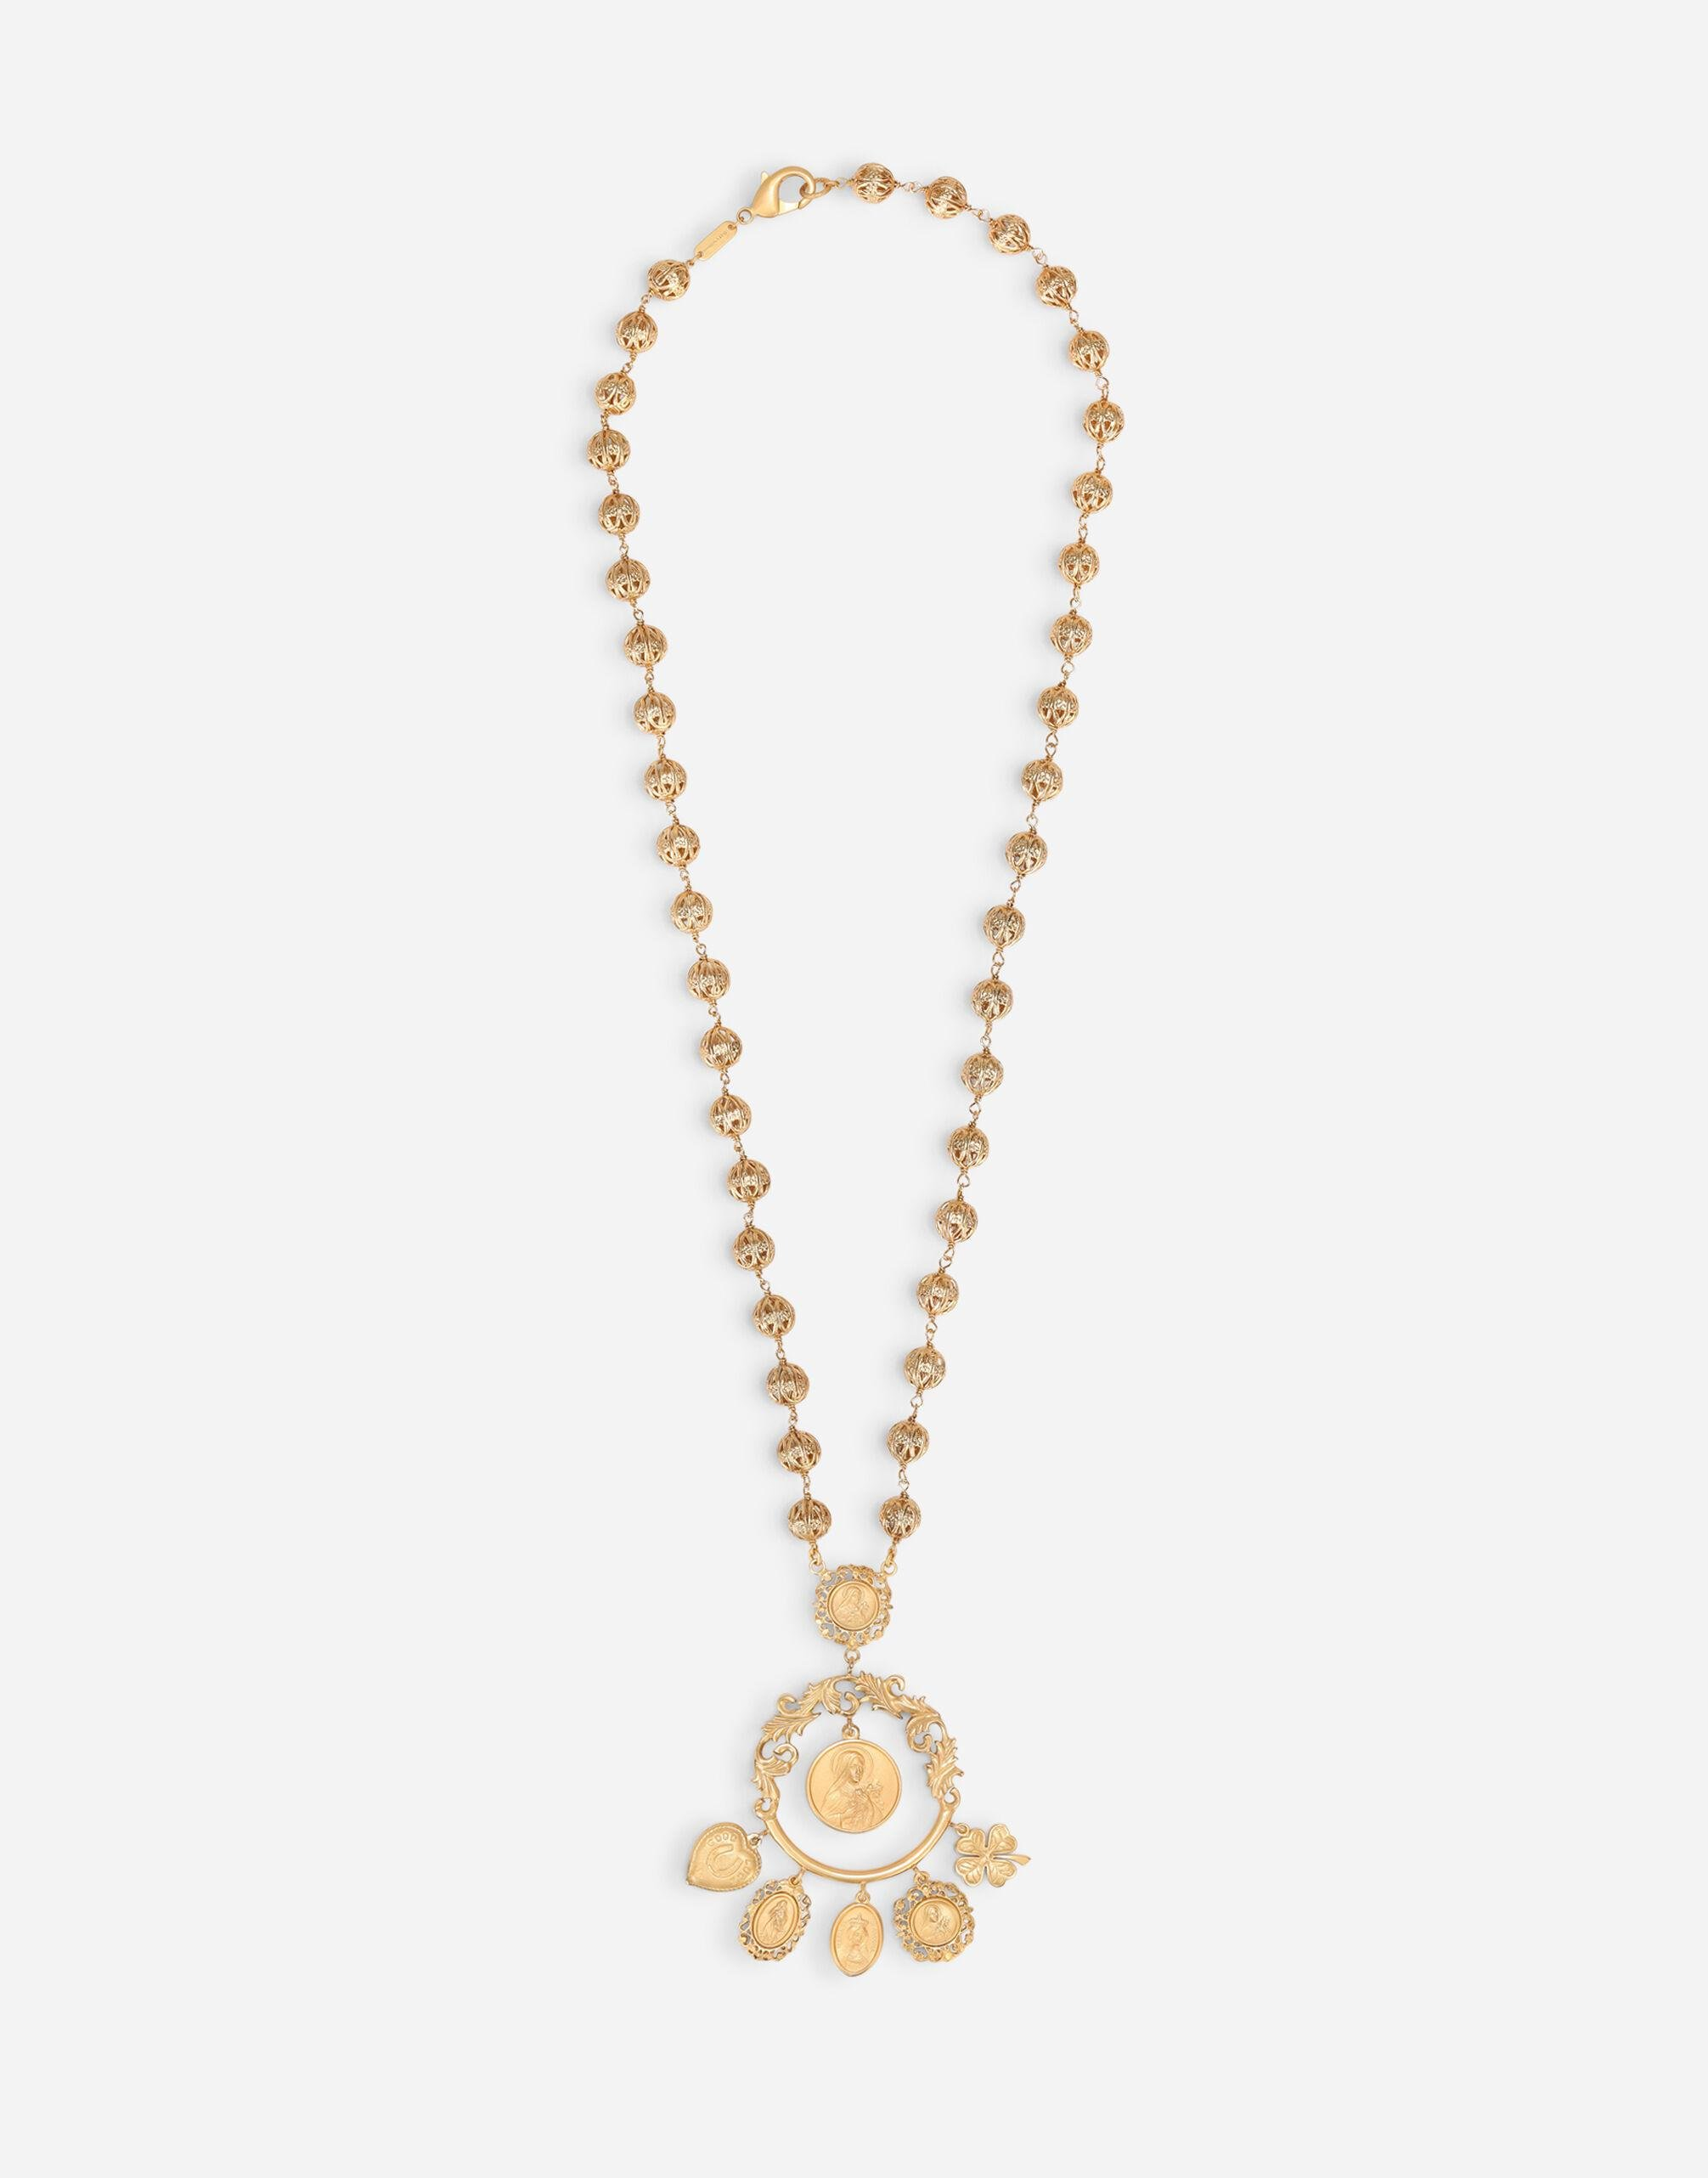 Long necklace with decorative details